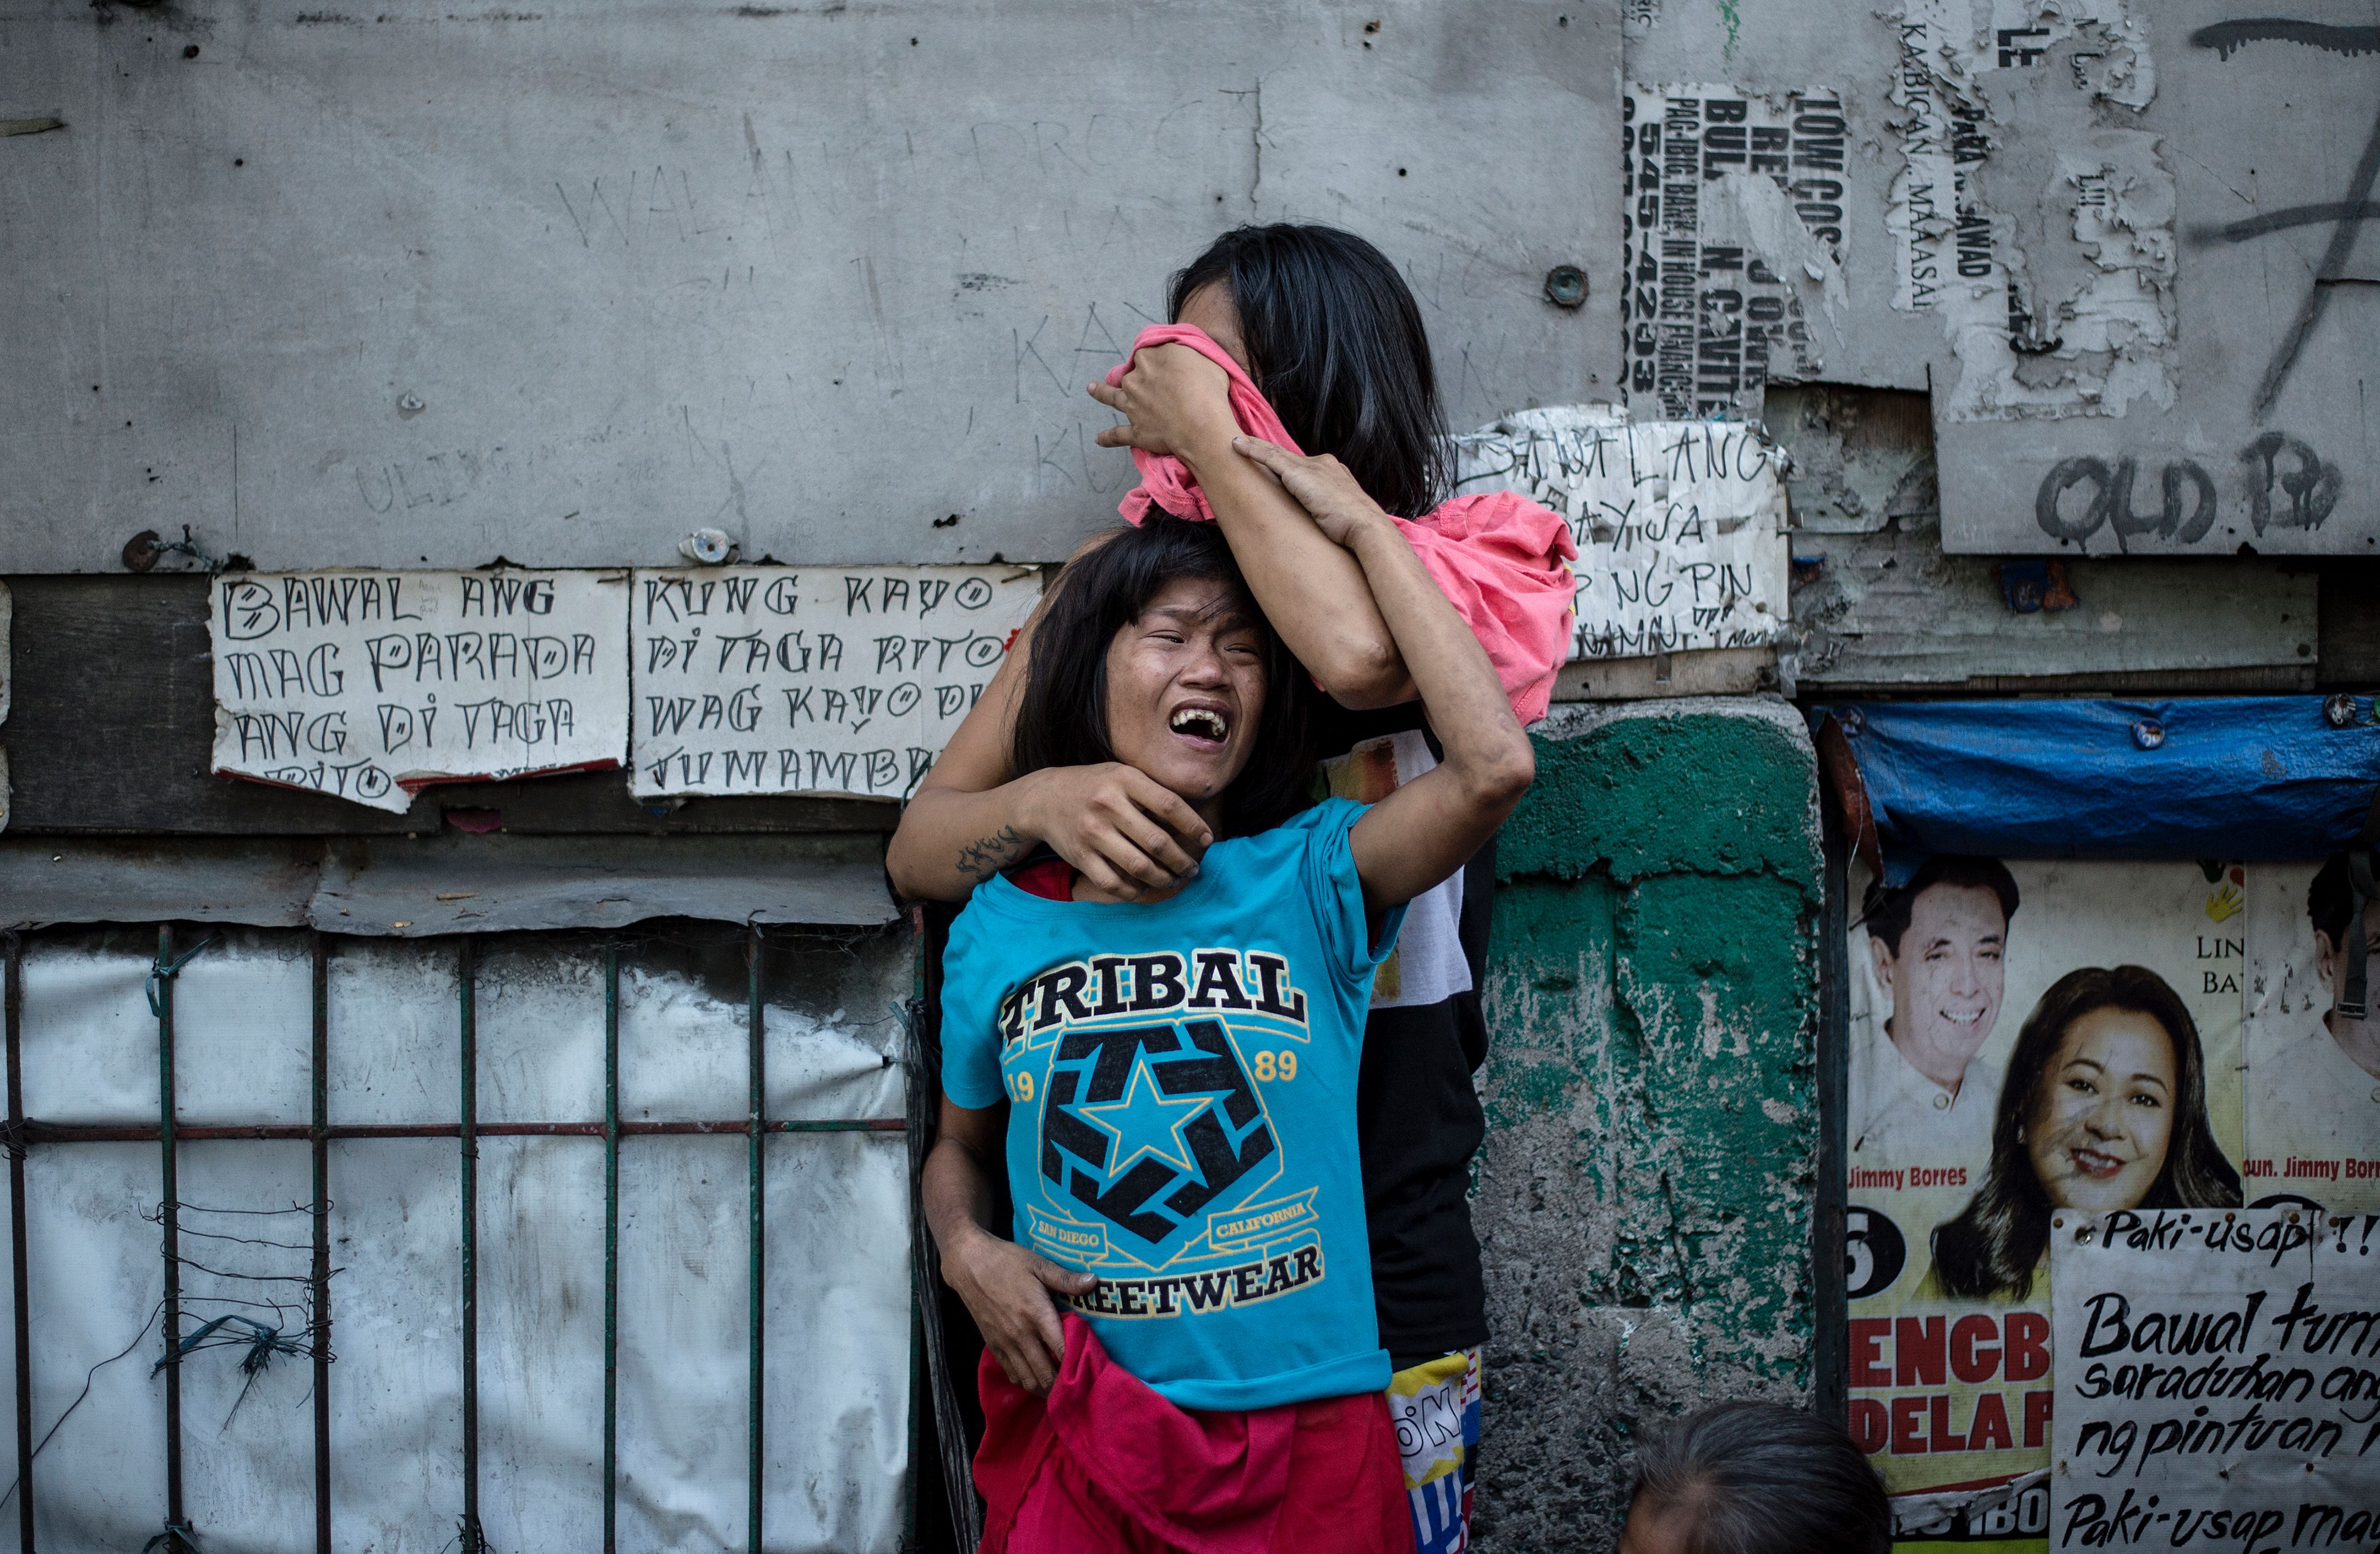 Analyn Roxas, 26, mourns with her sister after her partner, Valien Mendoza, a suspected drug dealer, was gunned down by unidentified assailants in Manila, March 7, 2017.